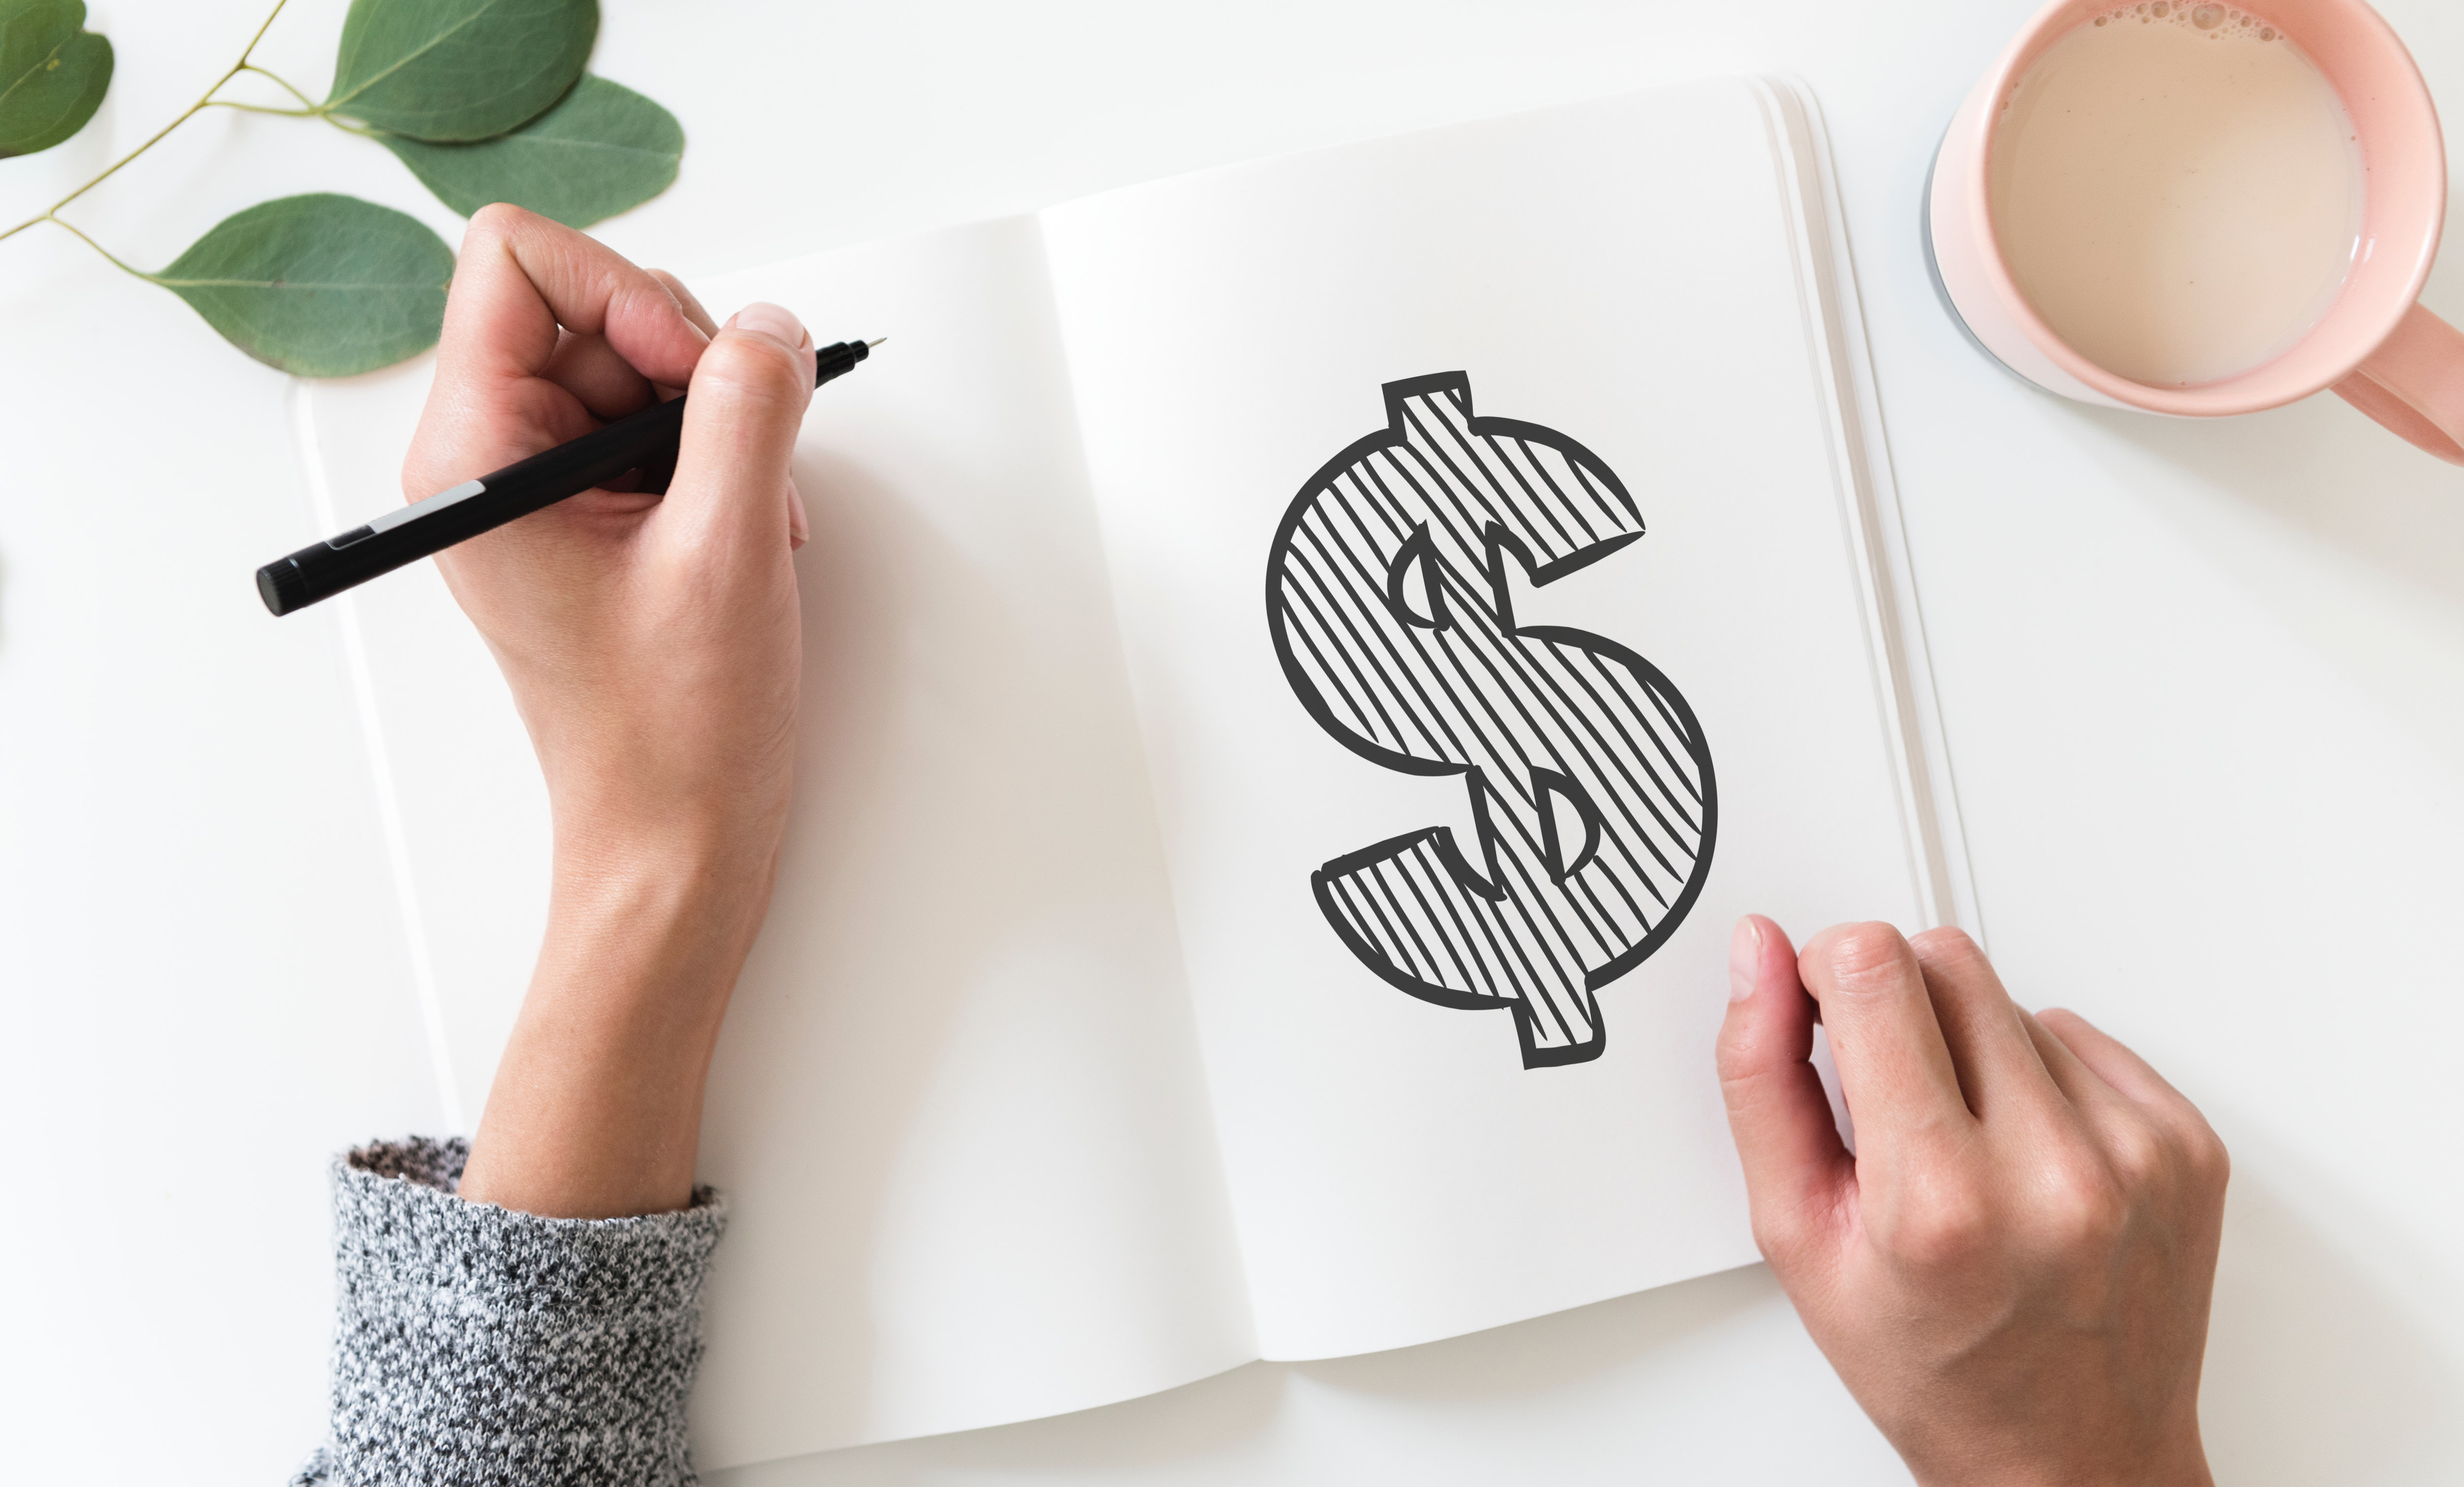 Woman's hands drawing a dollar sign on a piece of paper